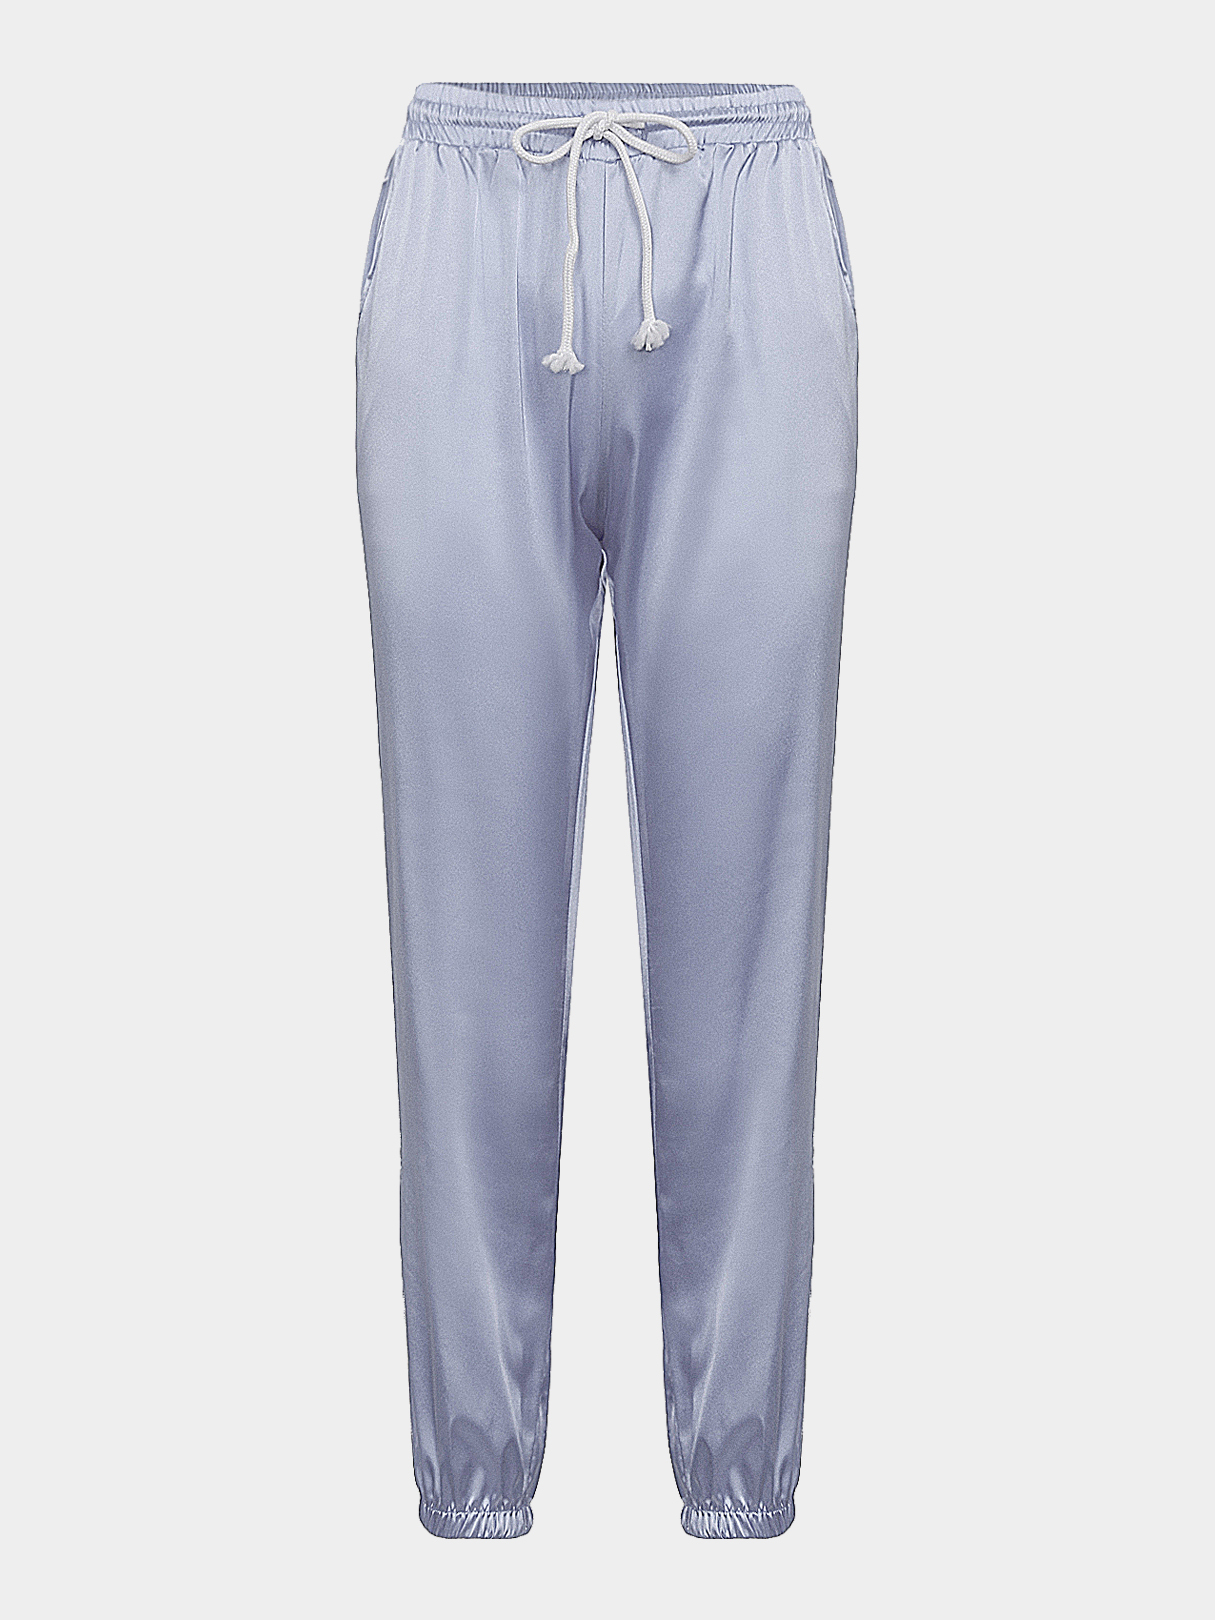 Sliver and grey causal drawstring waist harem trousers...